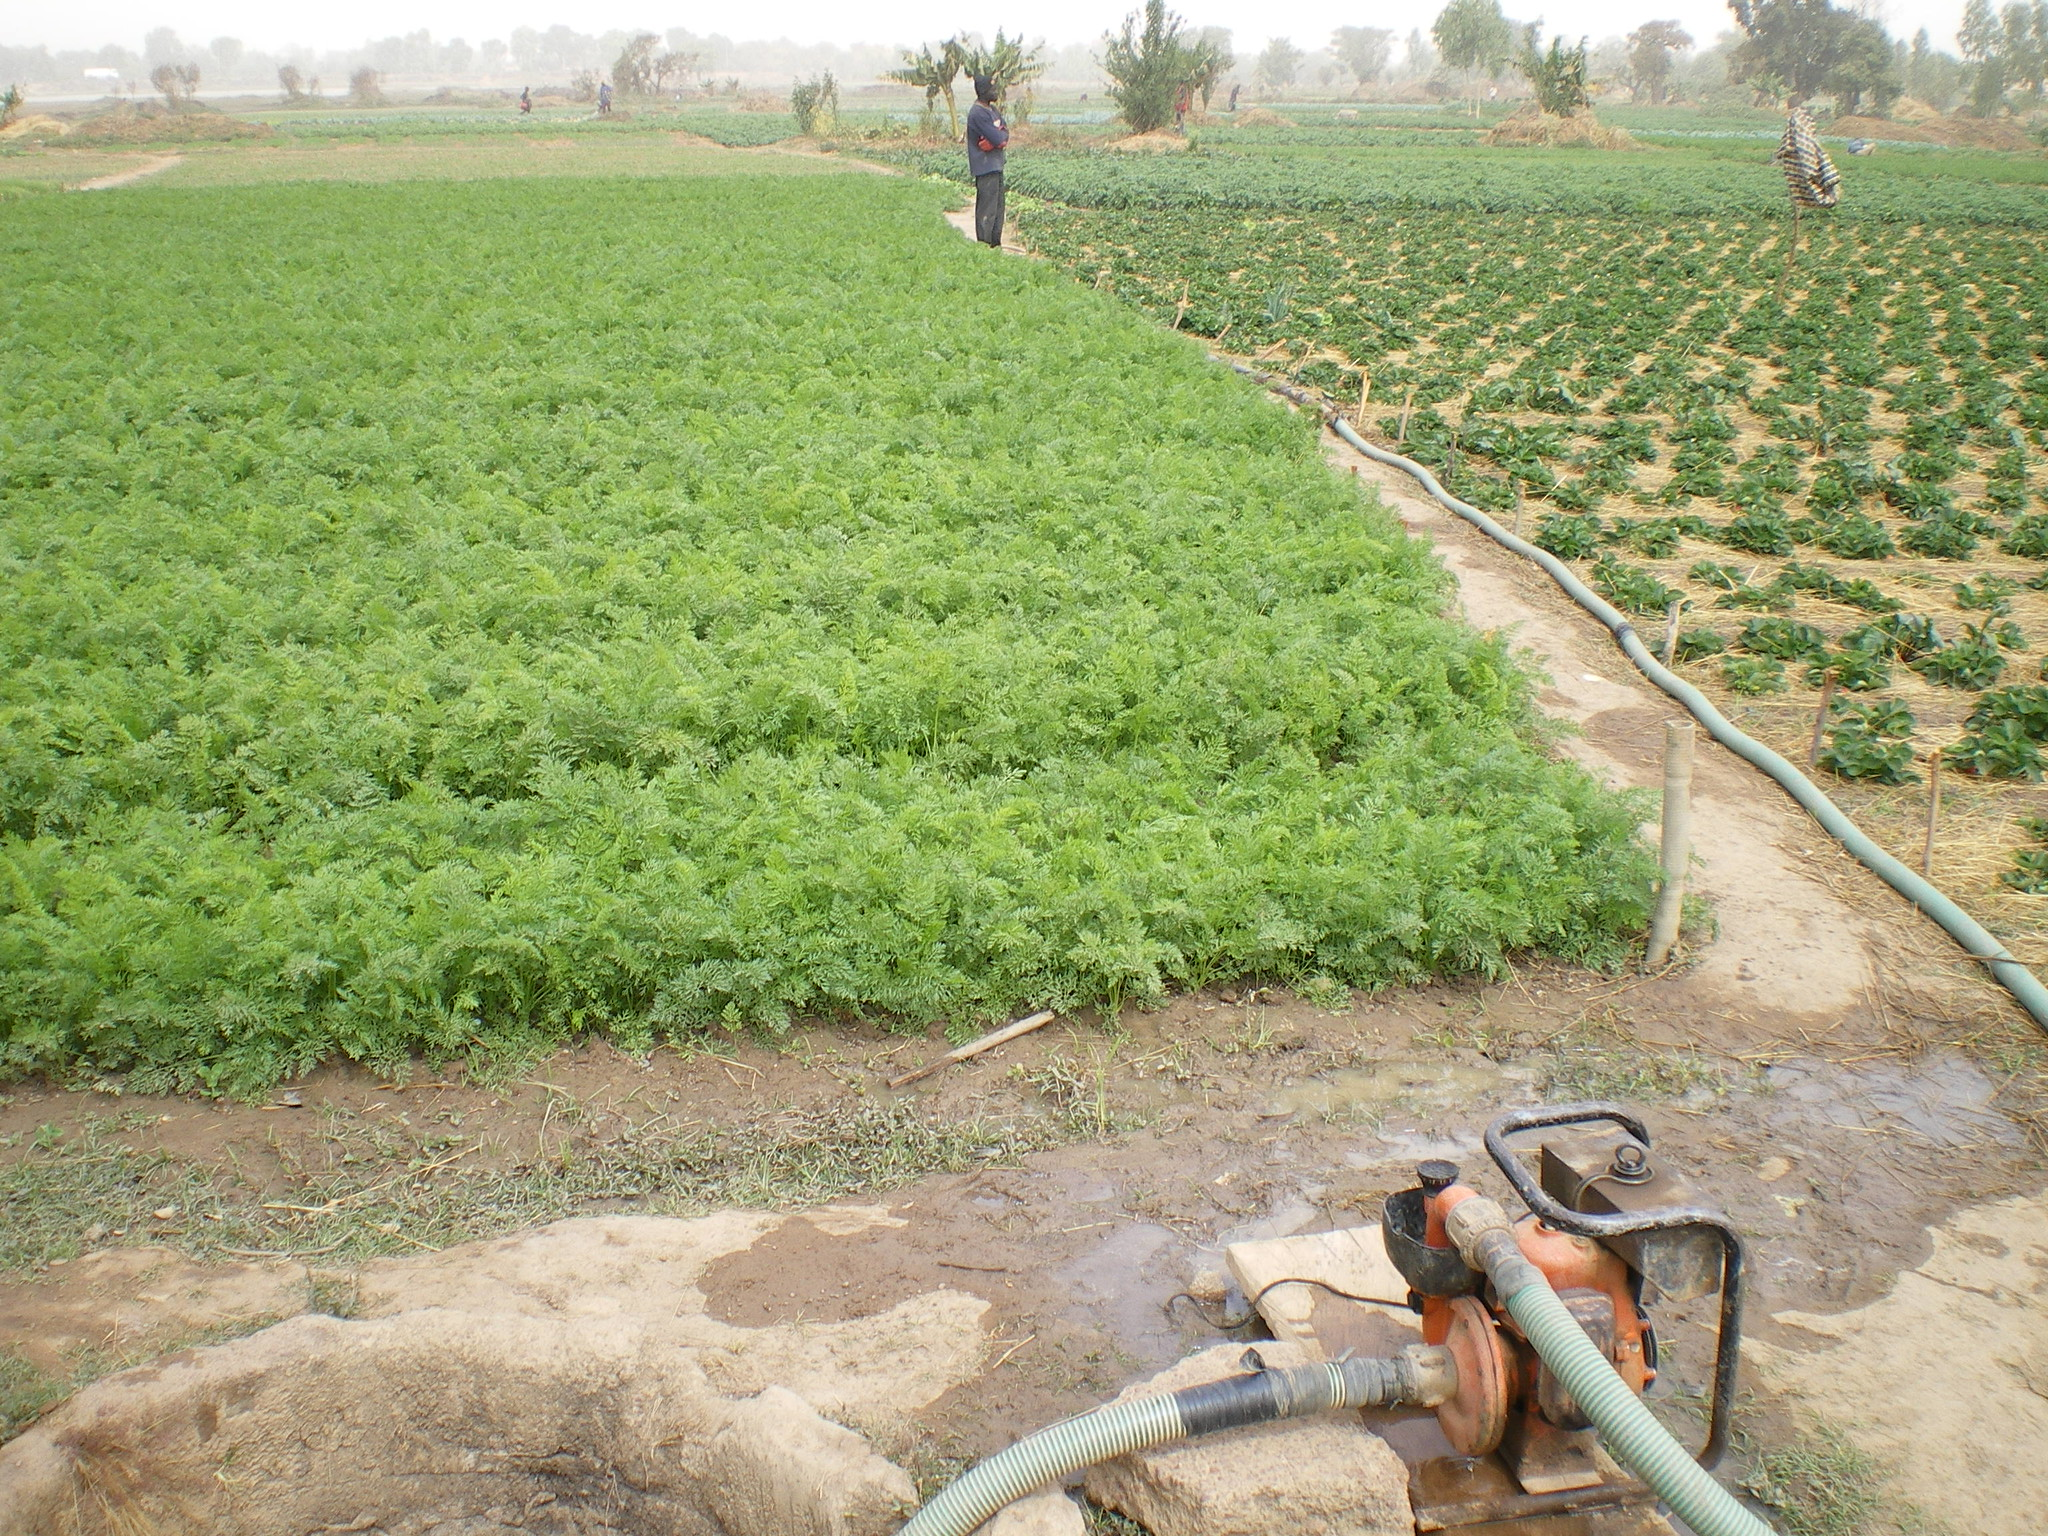 In poorer countries, using raw wastewater to irrigate urban farms could be an underlying cause of antibiotic resistance.